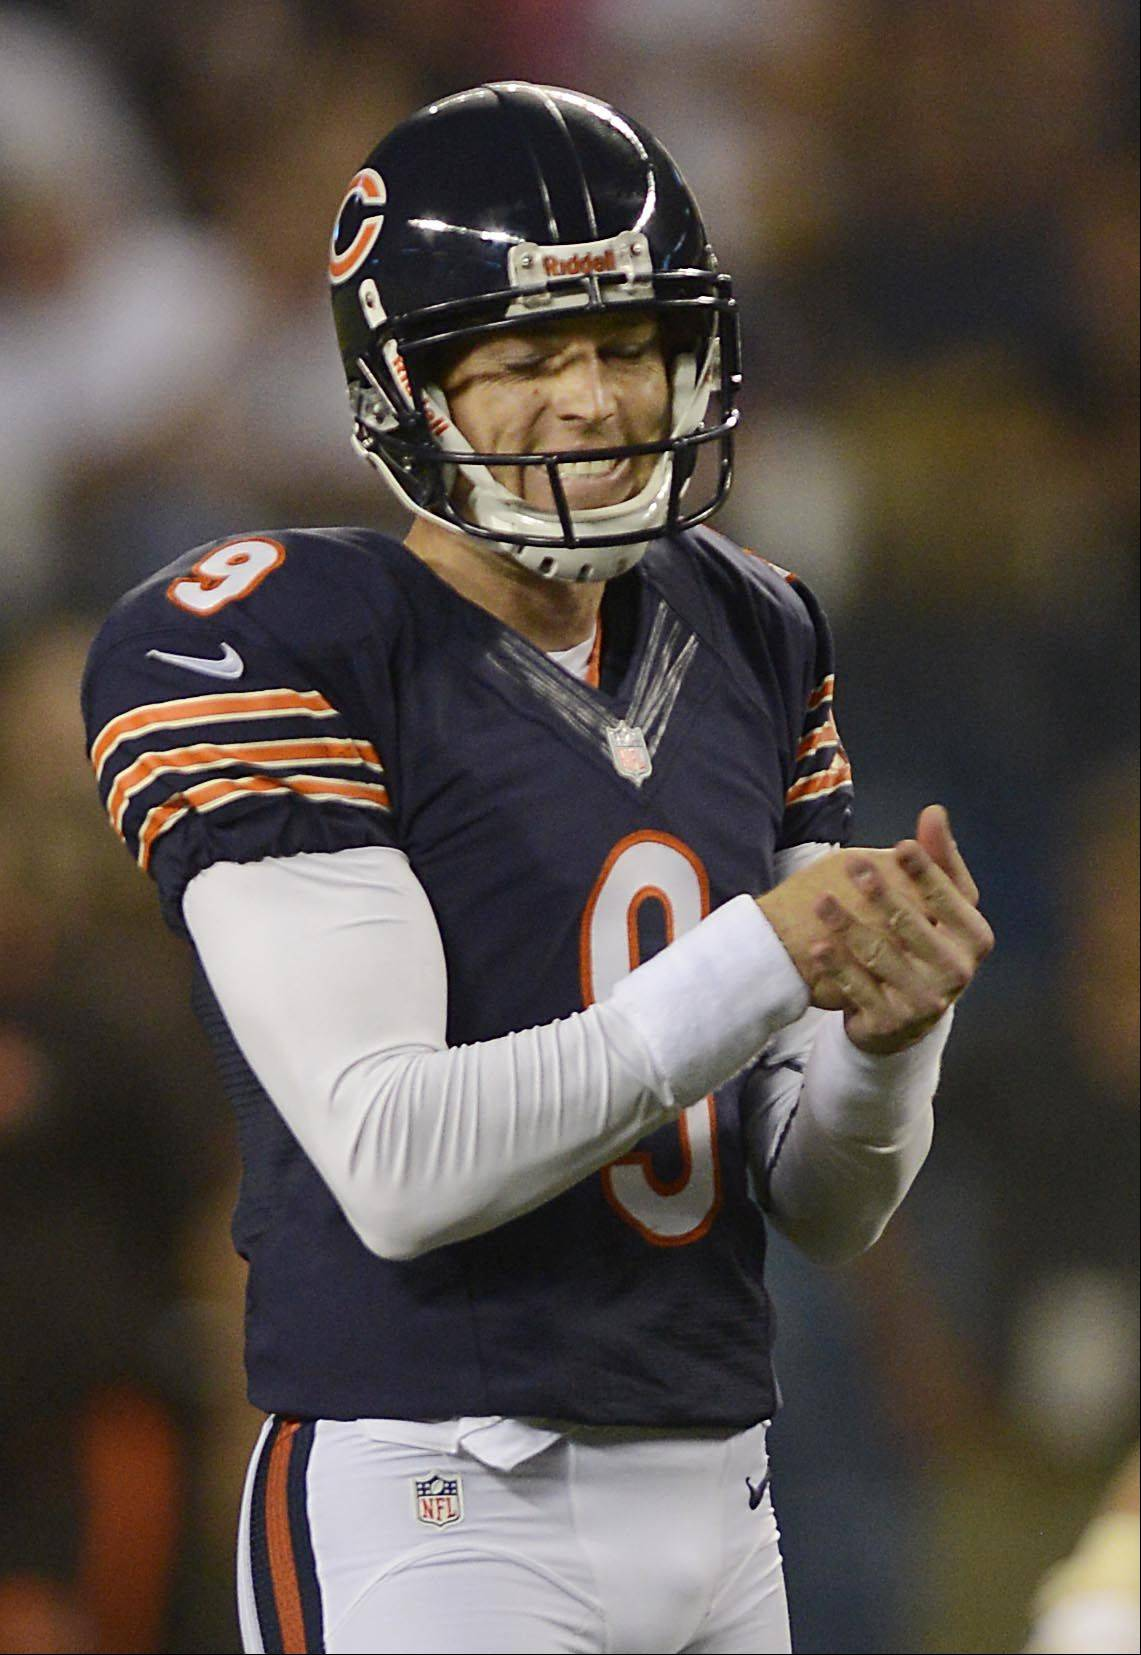 Chicago Bears kicker Robbie Gould reacts after missing a 57-yard field goal attempt in the final seconds.